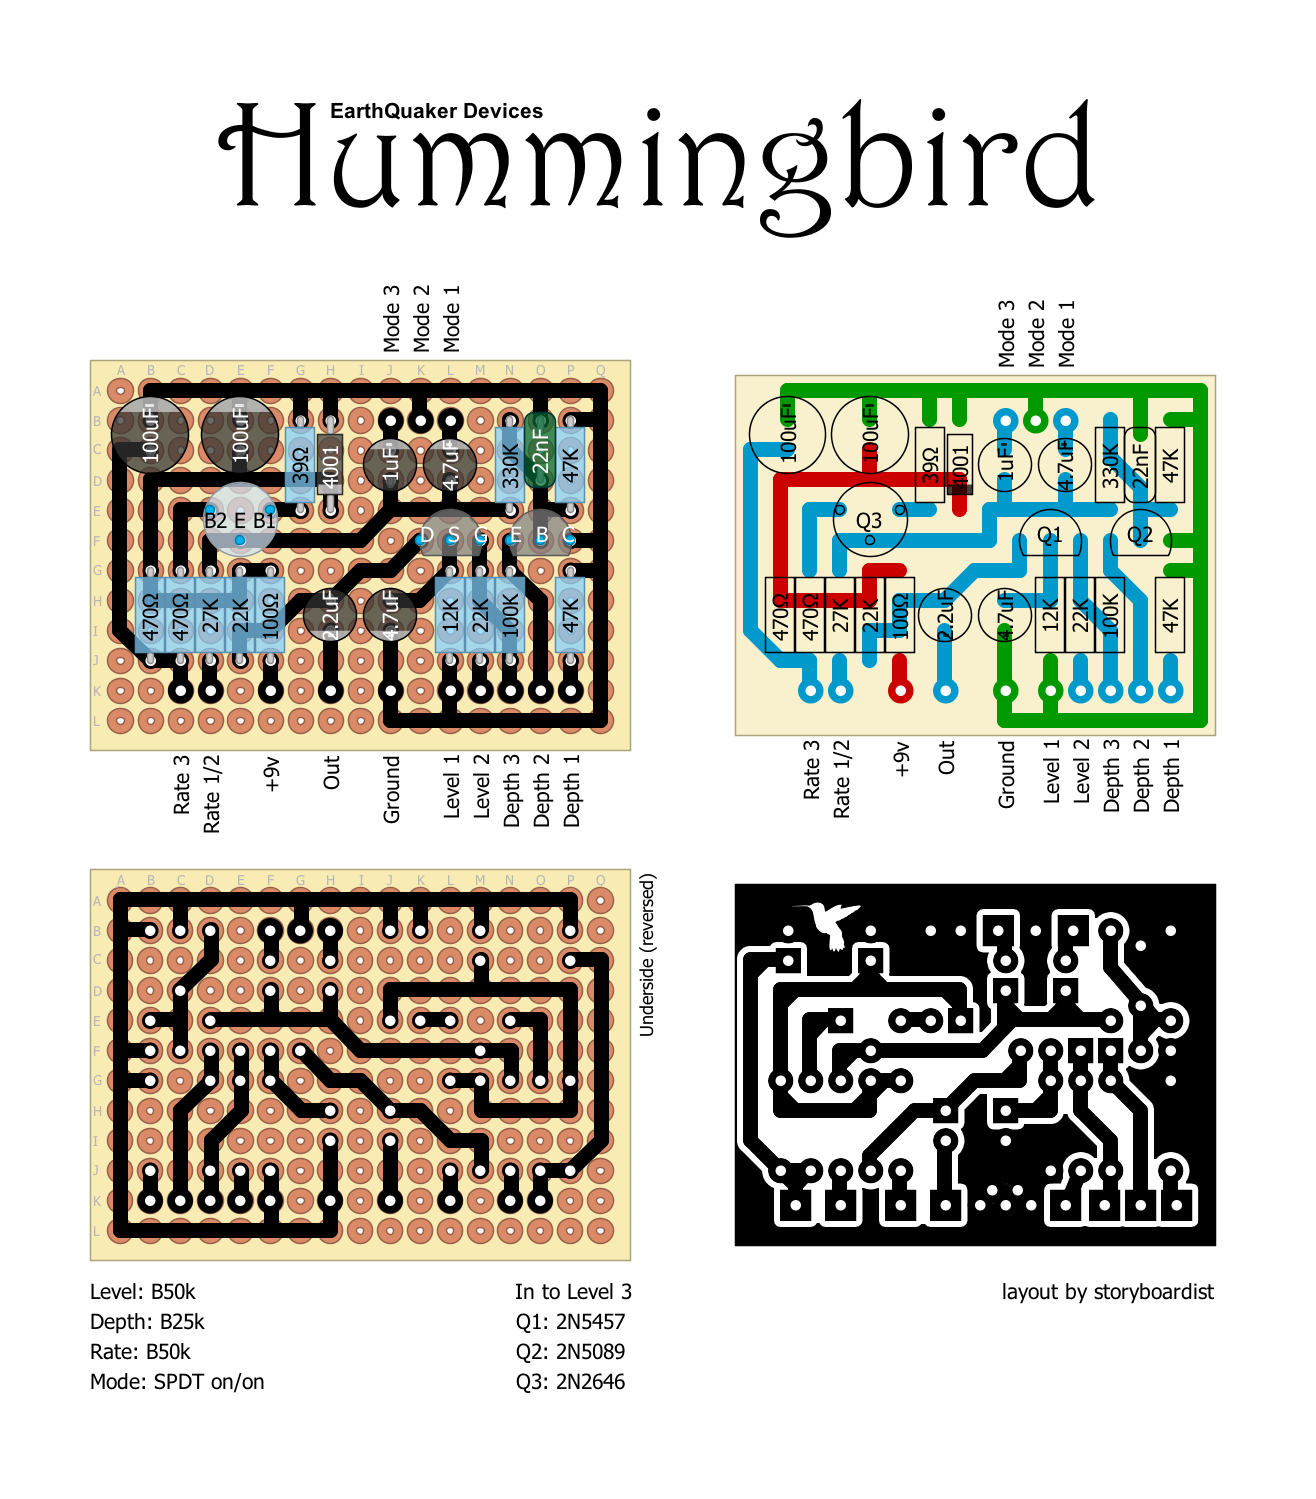 hight resolution of  schematic for this one and ended up just tracing the vero layout from the tagboard effects blog so here you go internet the schem for the hummingbird